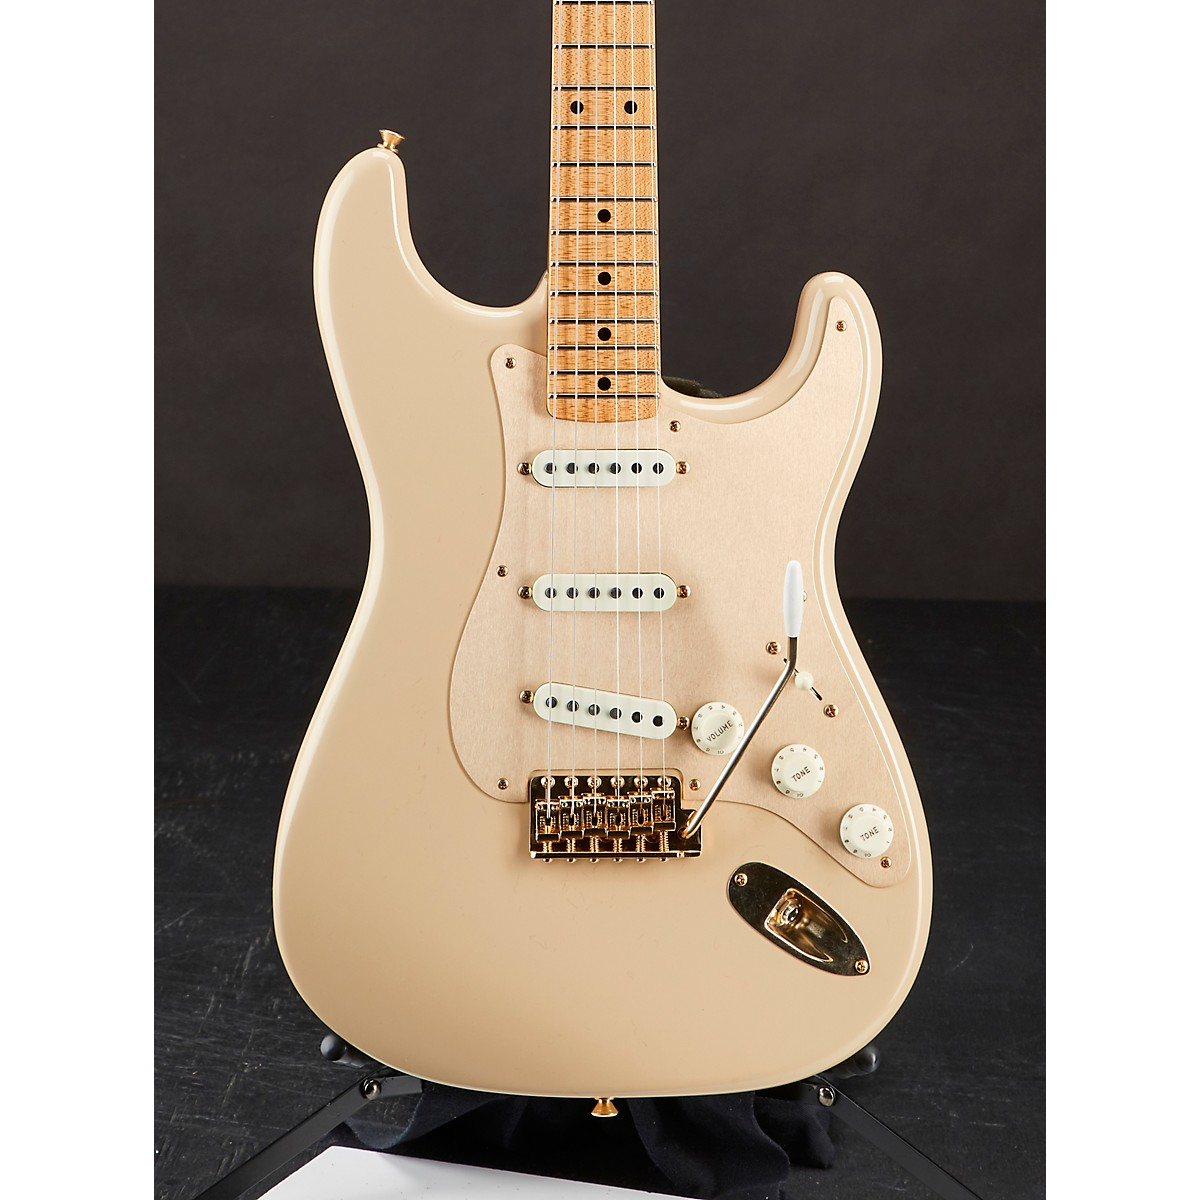 Fender Custom Shop 1957 Stratocaster Deluxe Closet Classic Finish with Gold Hardware Electric Guitar